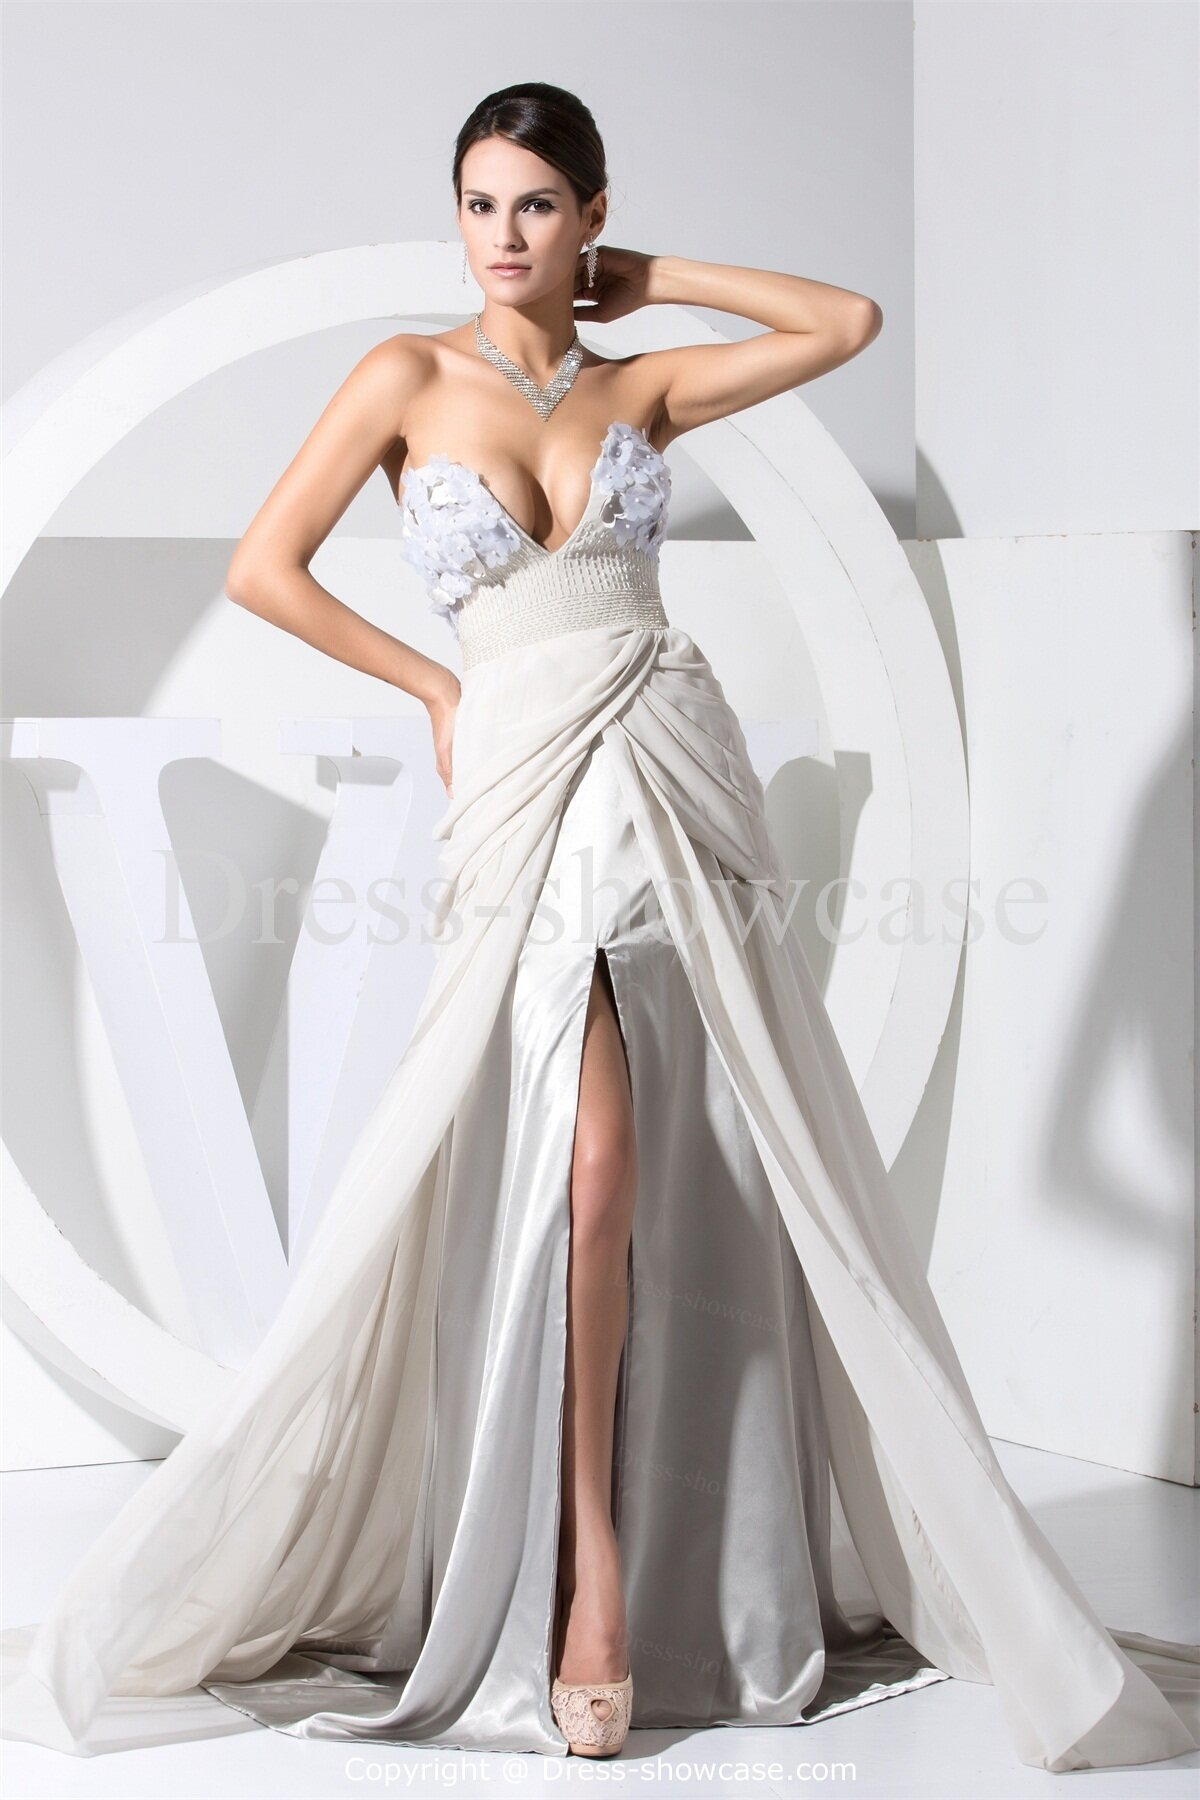 Silver Dress Unique Order For Every Occasion Pictures